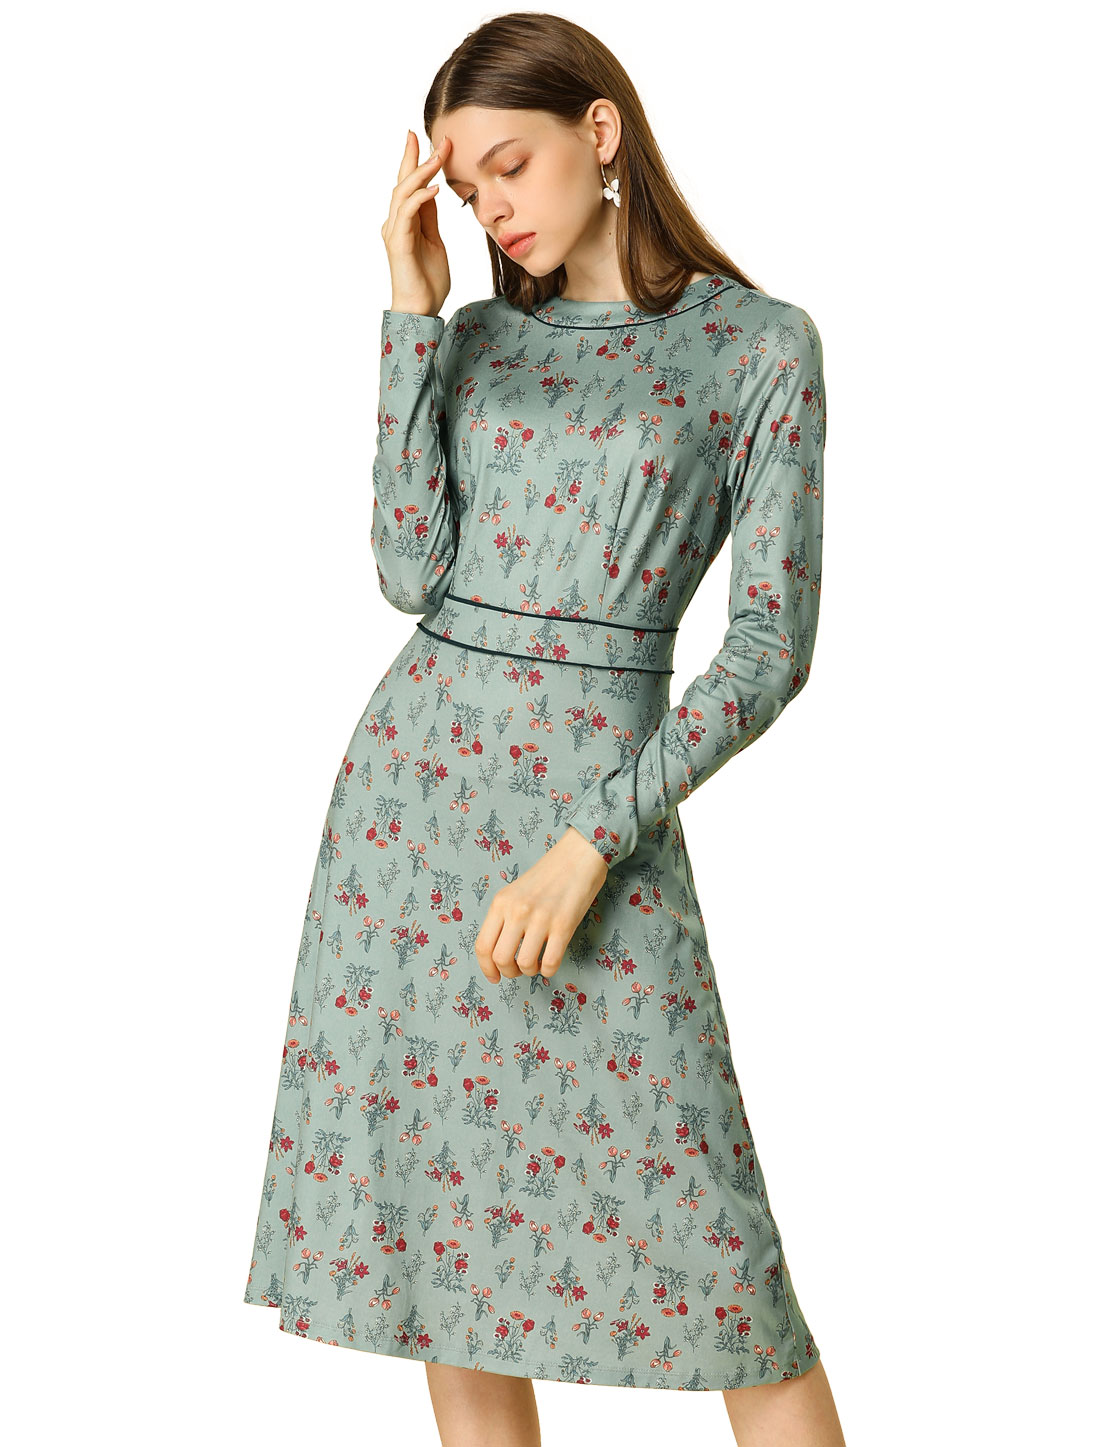 Women's Floral Long Sleeve A-Line Contrast Piped Vintage Dress Green S